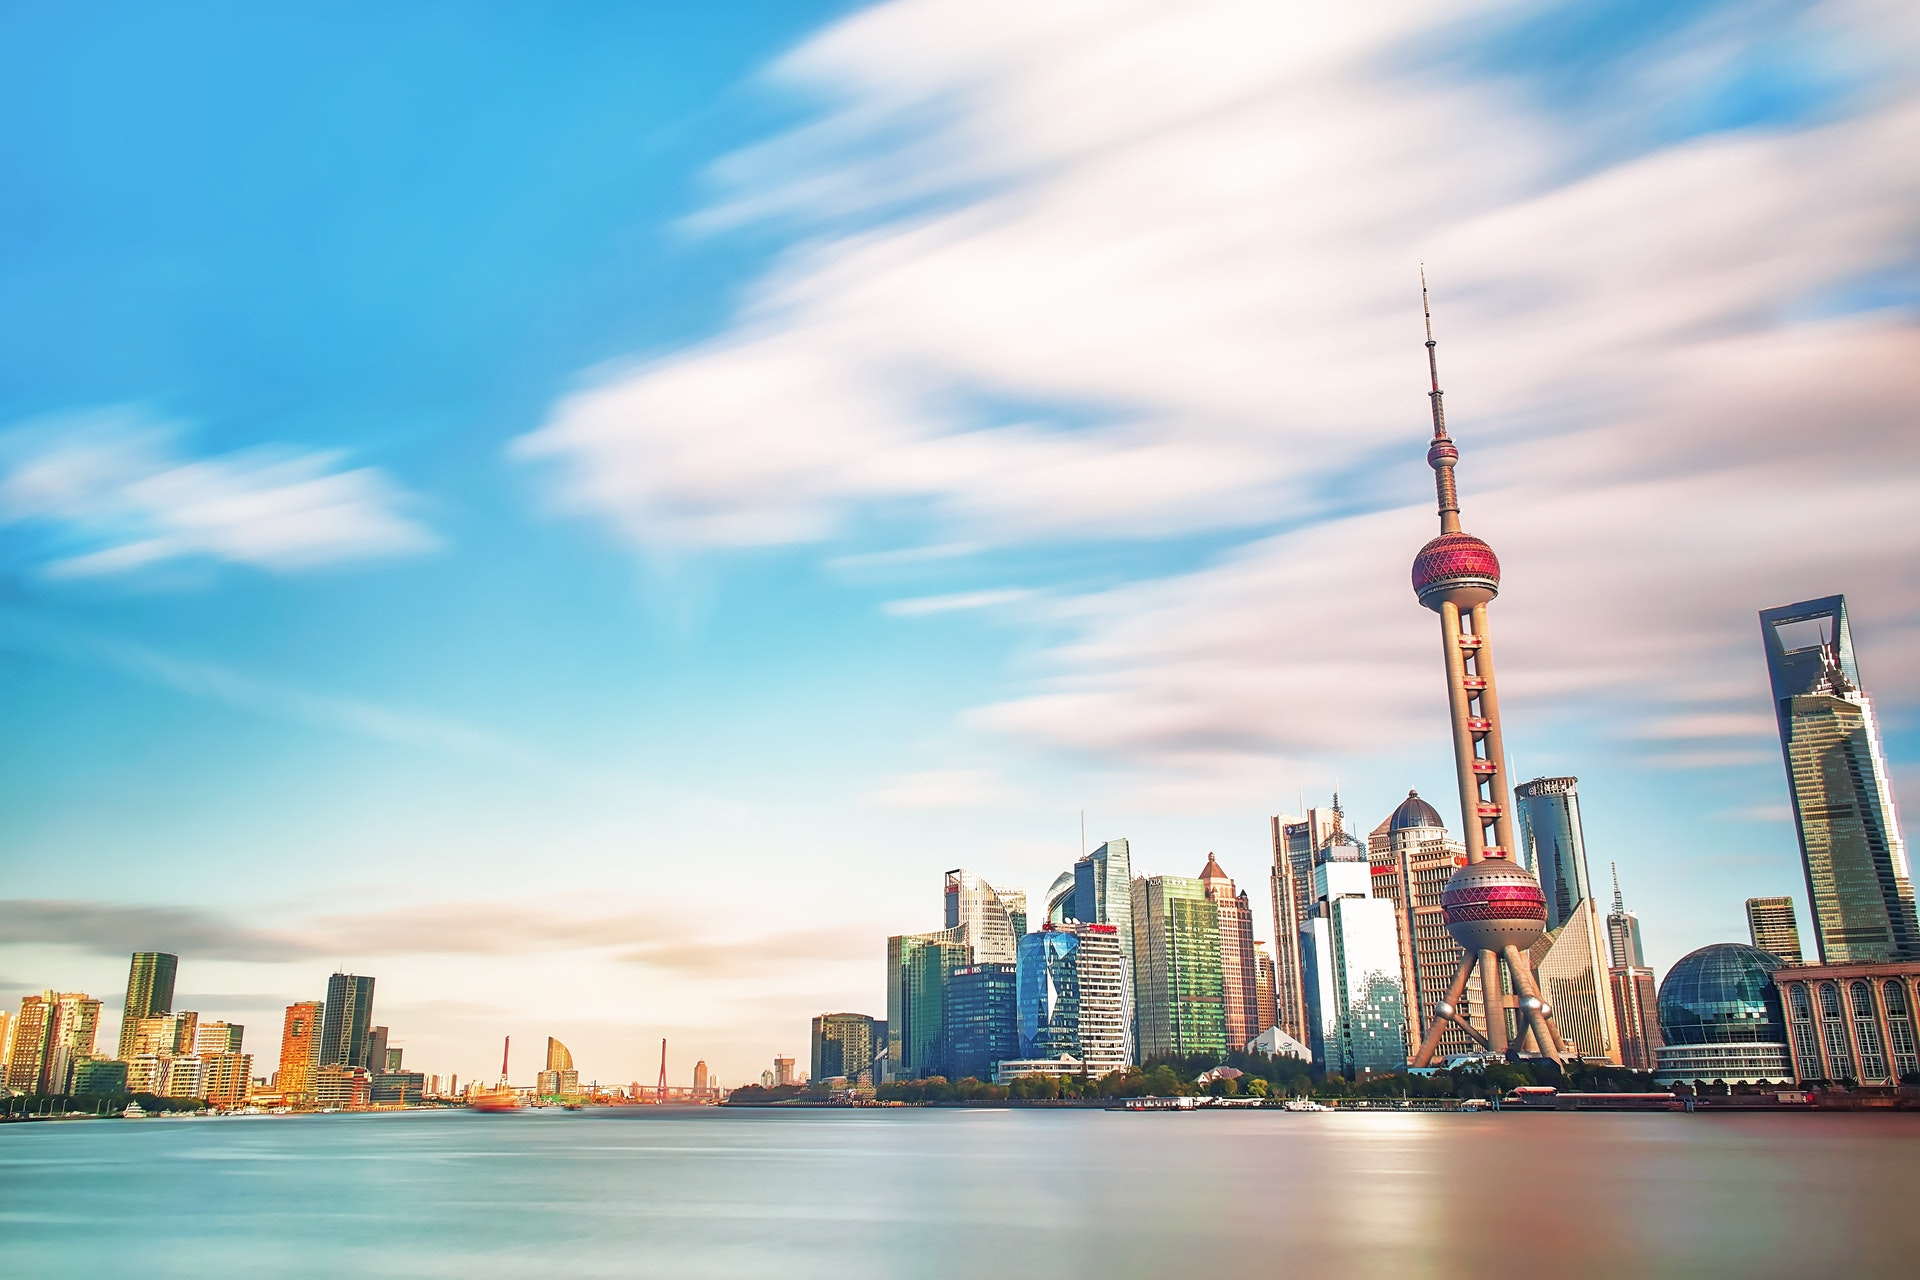 Chinese Banking System Remains Vulnerable Amid Slowing Profitability, Rising NPLs